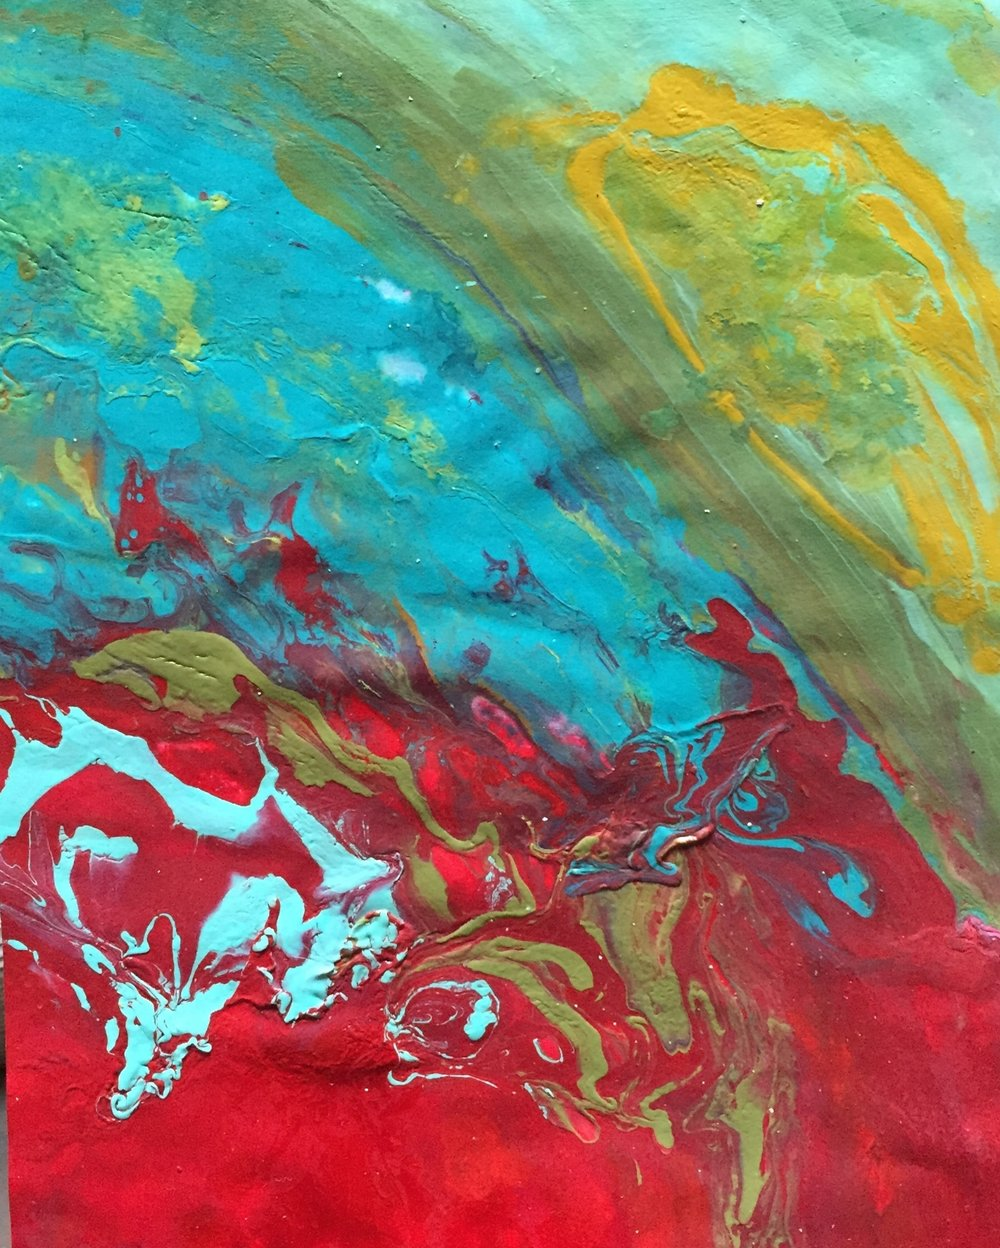 "Red Rain 24"" x 20"" on paper sold"